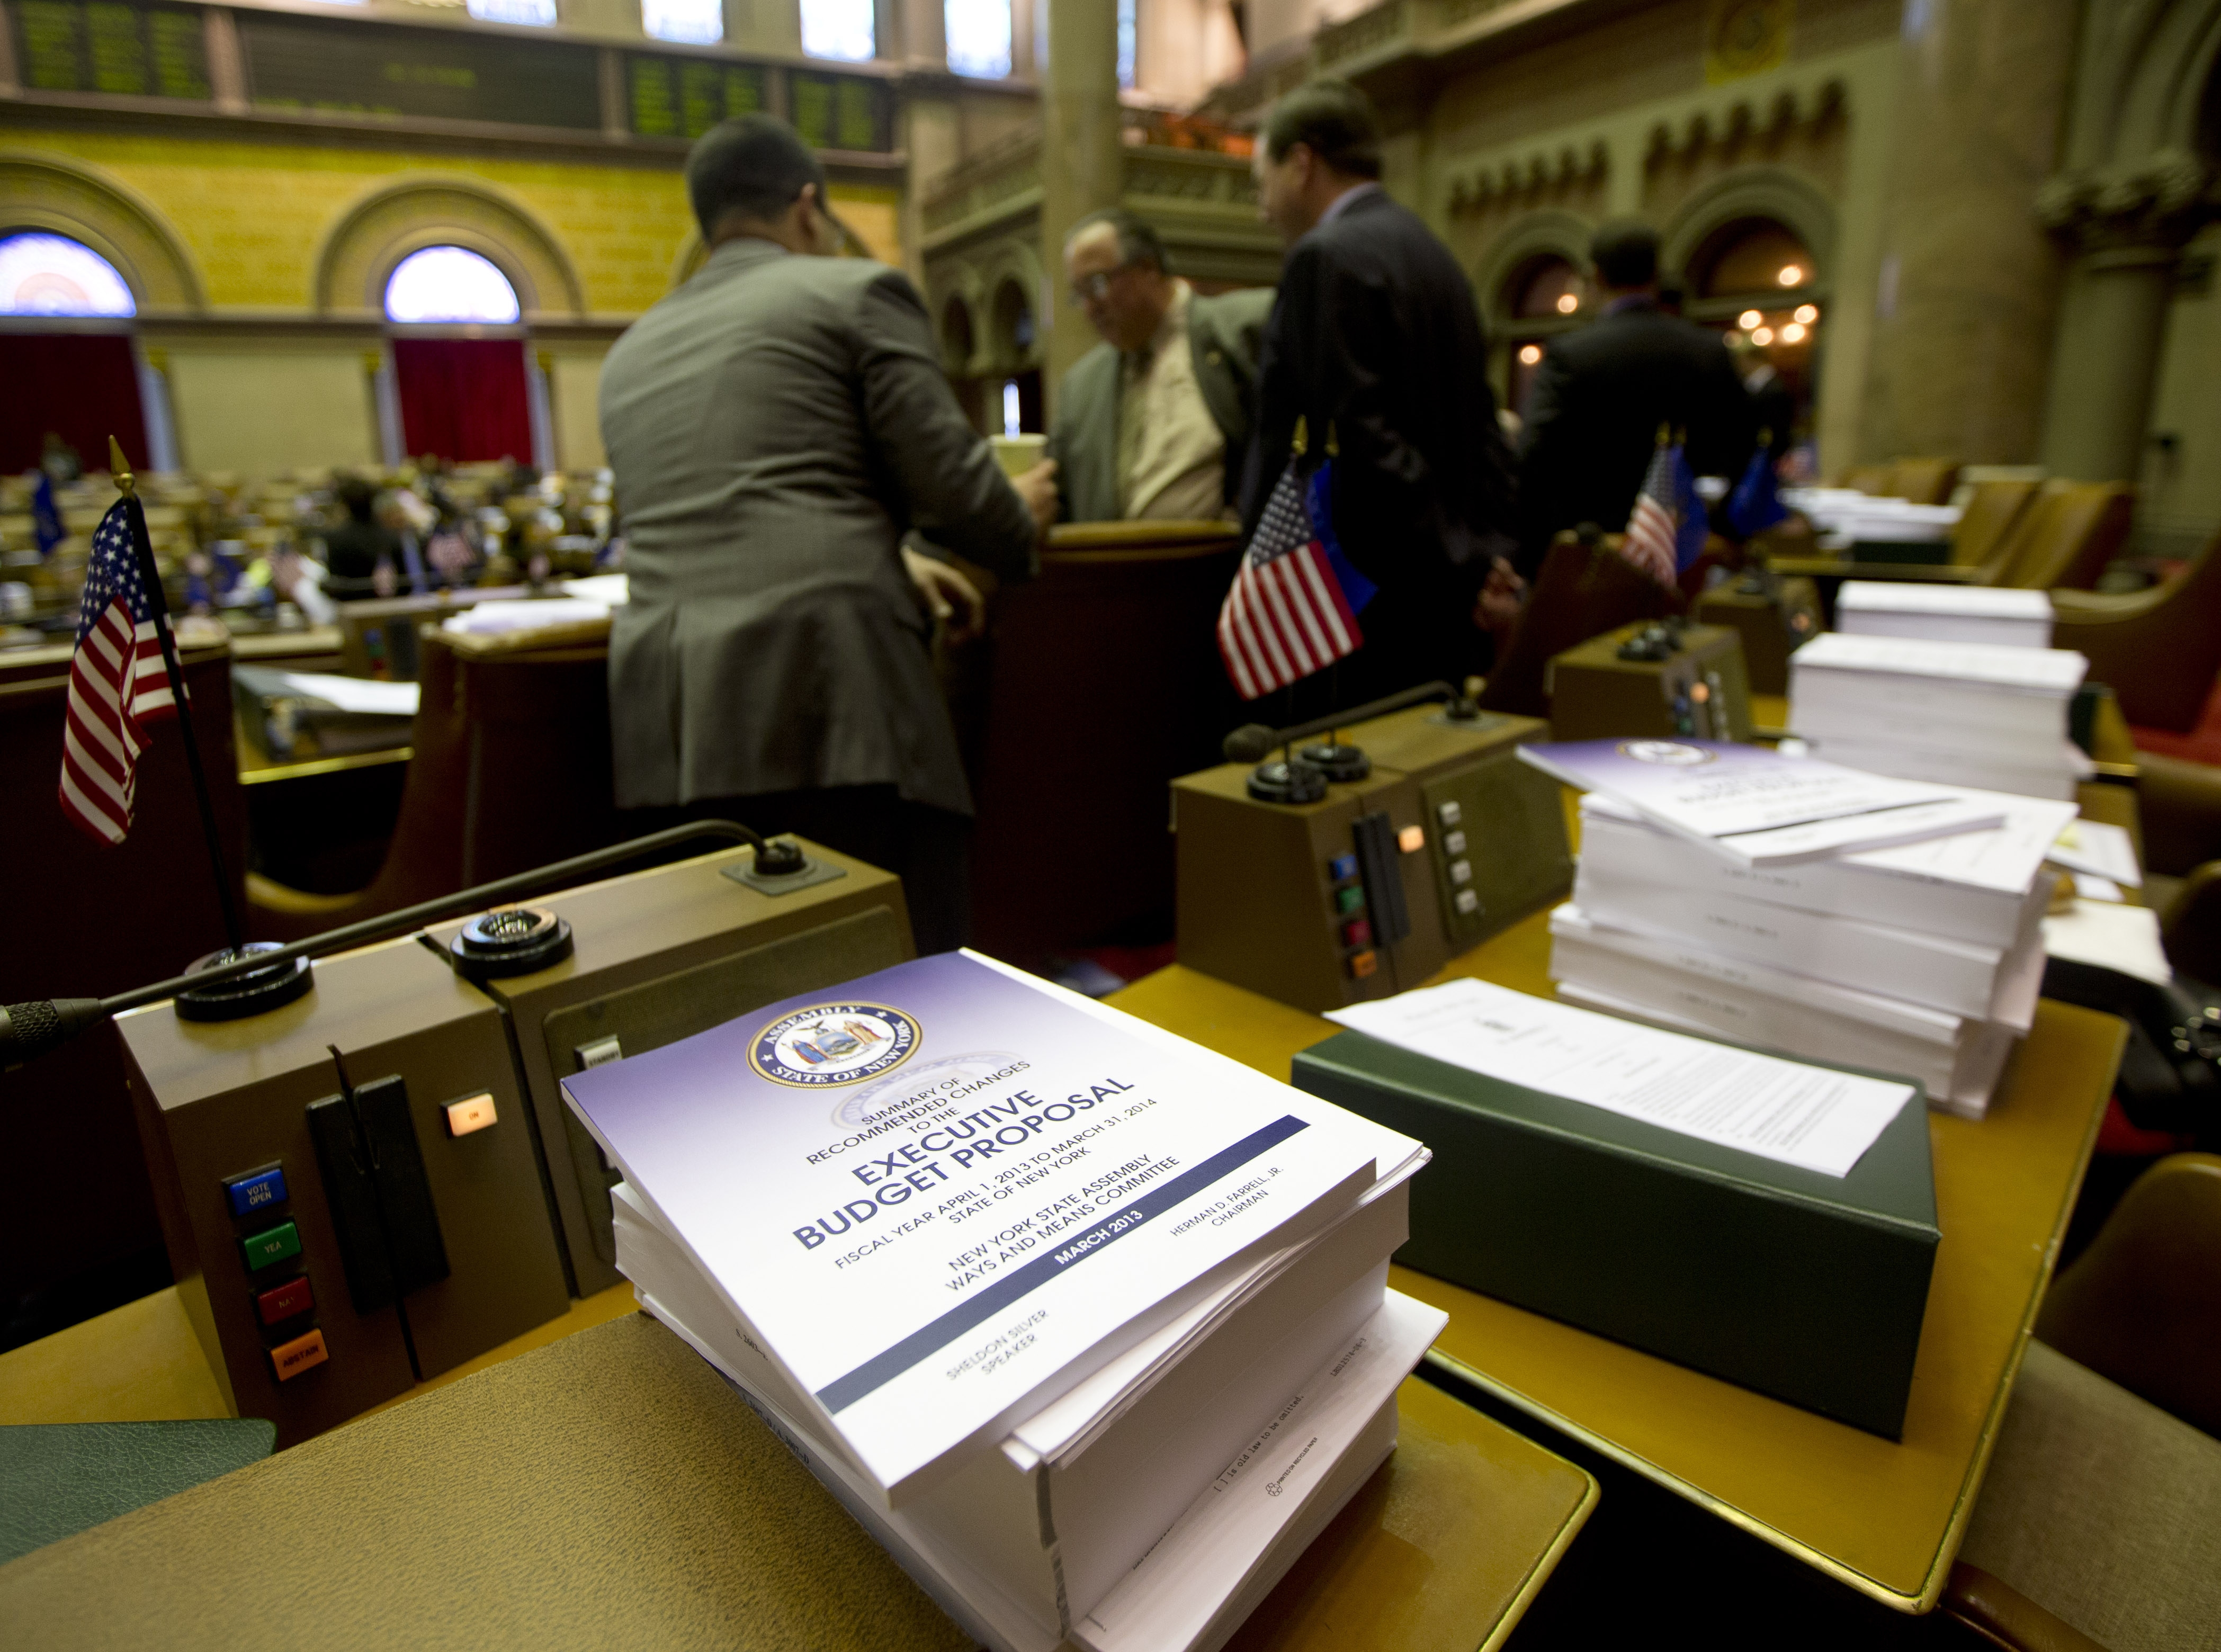 The State Legislature approved a budget on time for a third straight year that tapped money from some agencies including the State Insurance Fund to balance spending, including a tax credit.